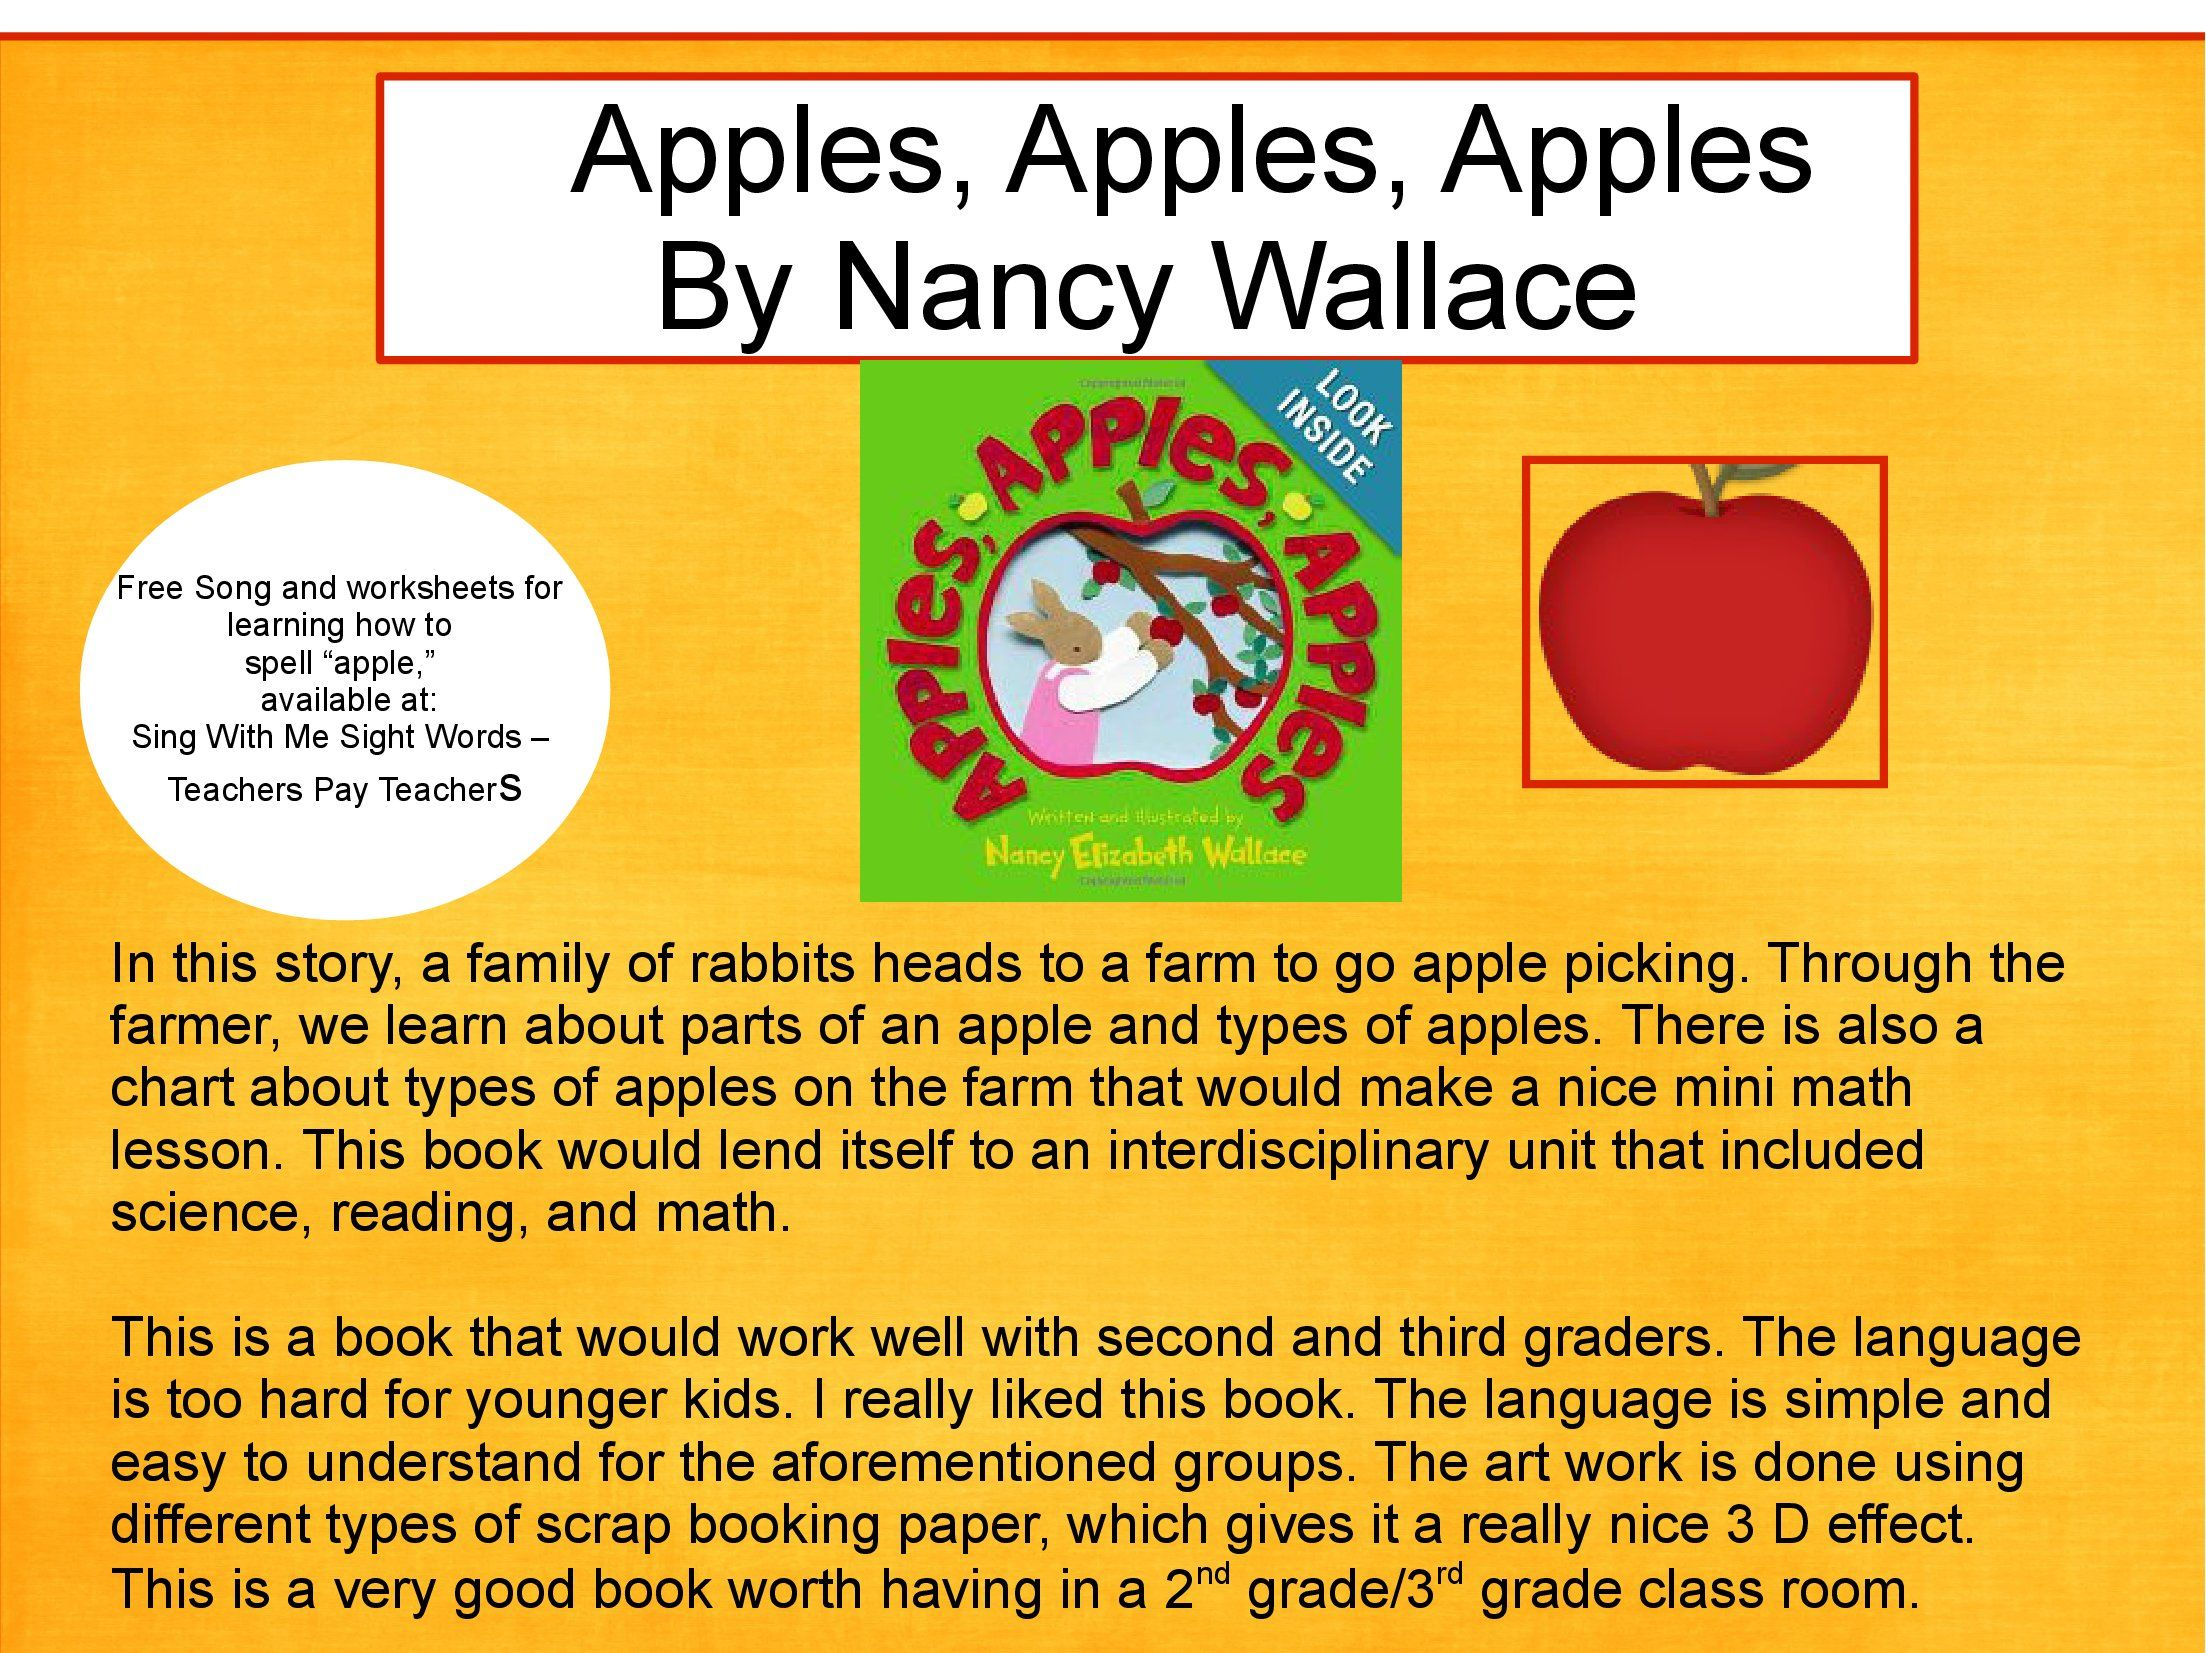 hight resolution of Book about apple picking for 2nd/3rd grade   Instructional planning